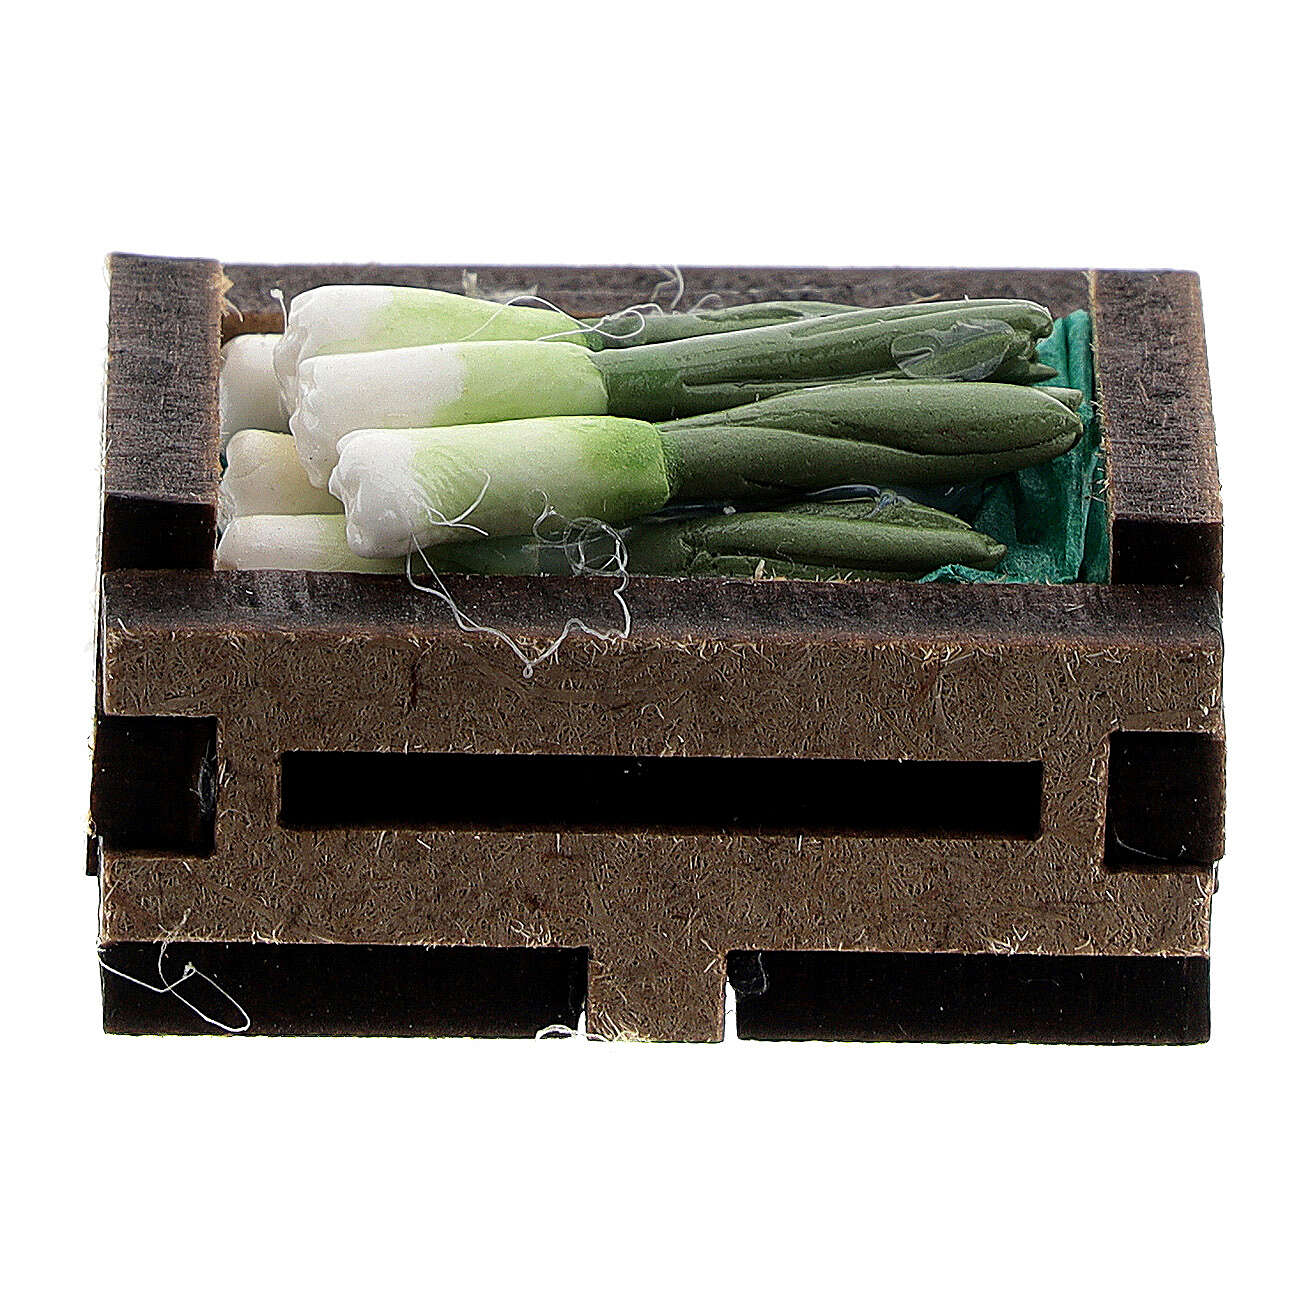 Wood box with resin onions for Nativity Scene with 10-12 cm figurines 4